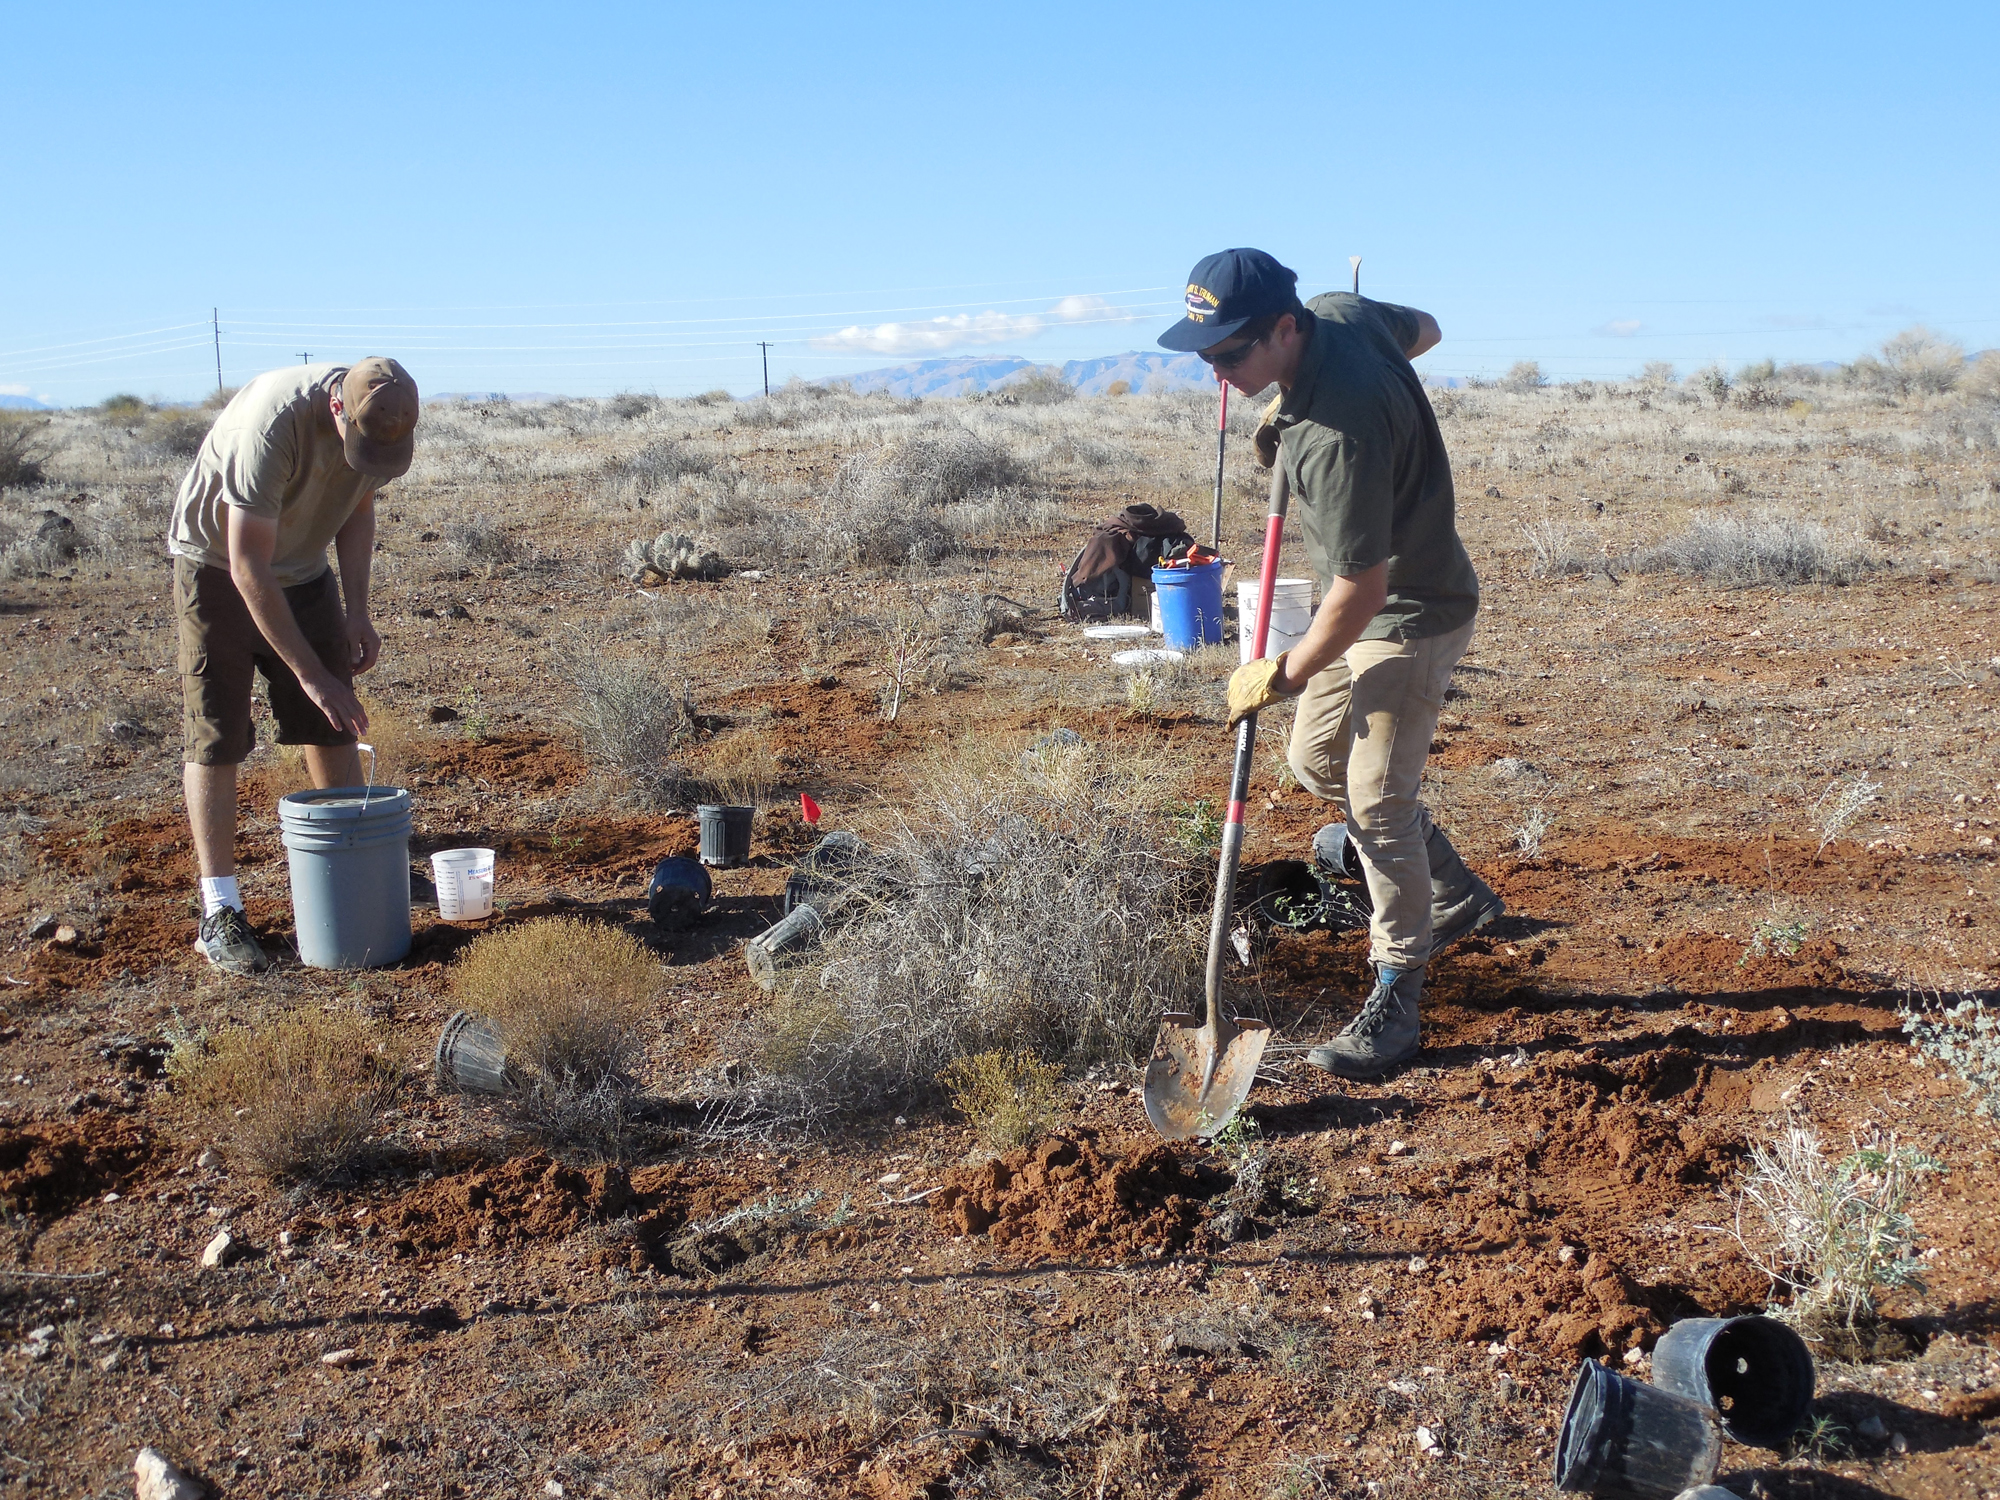 L-R, Nathan St. Andre and Jeff Jenkerson, technicians with the Utah Division of Wildlife Resources, plant native shrubs and grasses in the Red Cliffs Desert Reserve, Washington County, Utah, Nov. 22, 2016 | Photo by Julie Applegate, St. George News